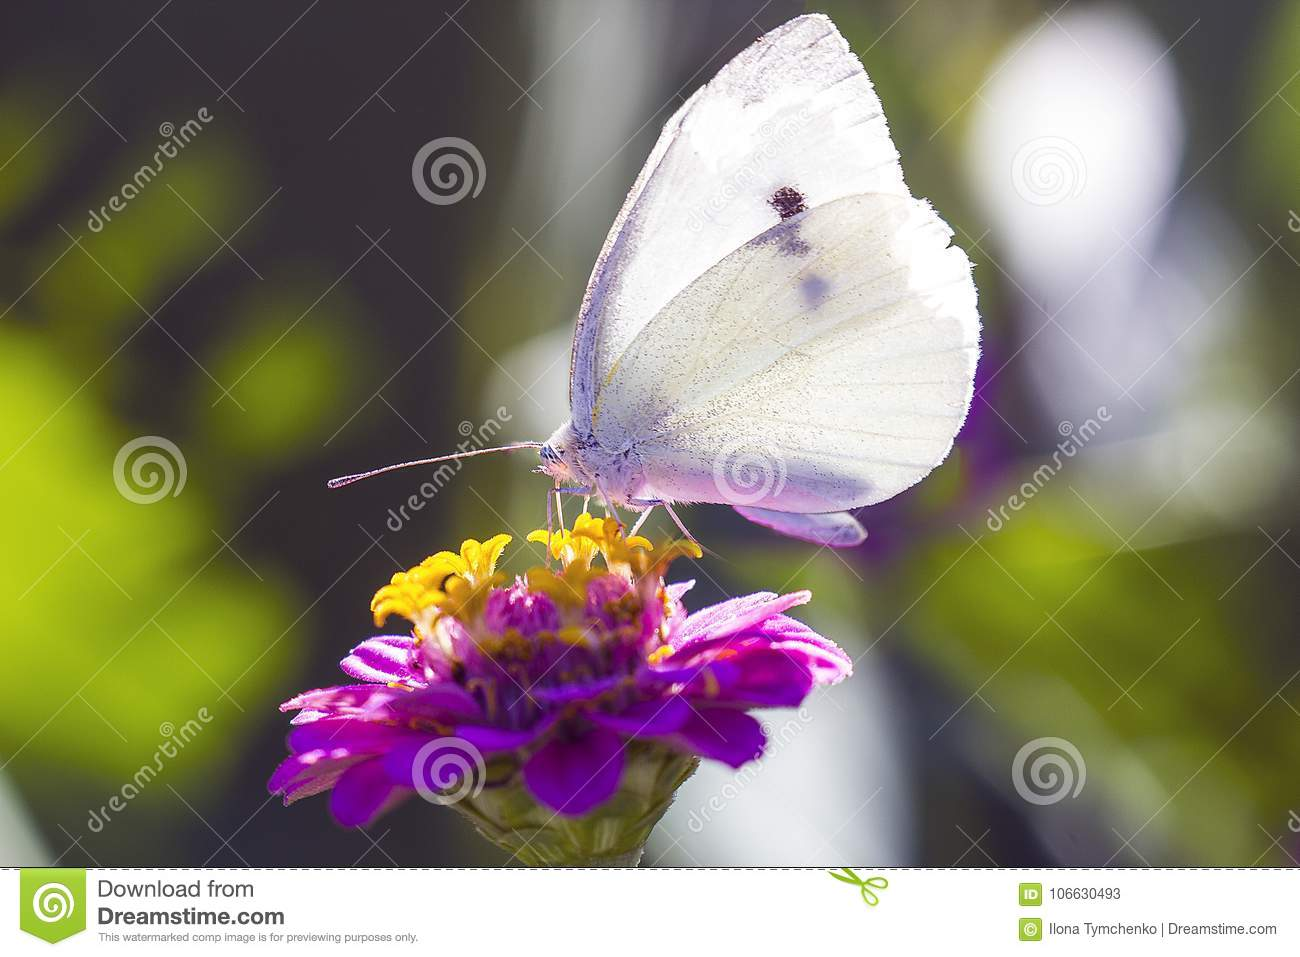 White Cabbage butterfly on pink zinnia flower, side view